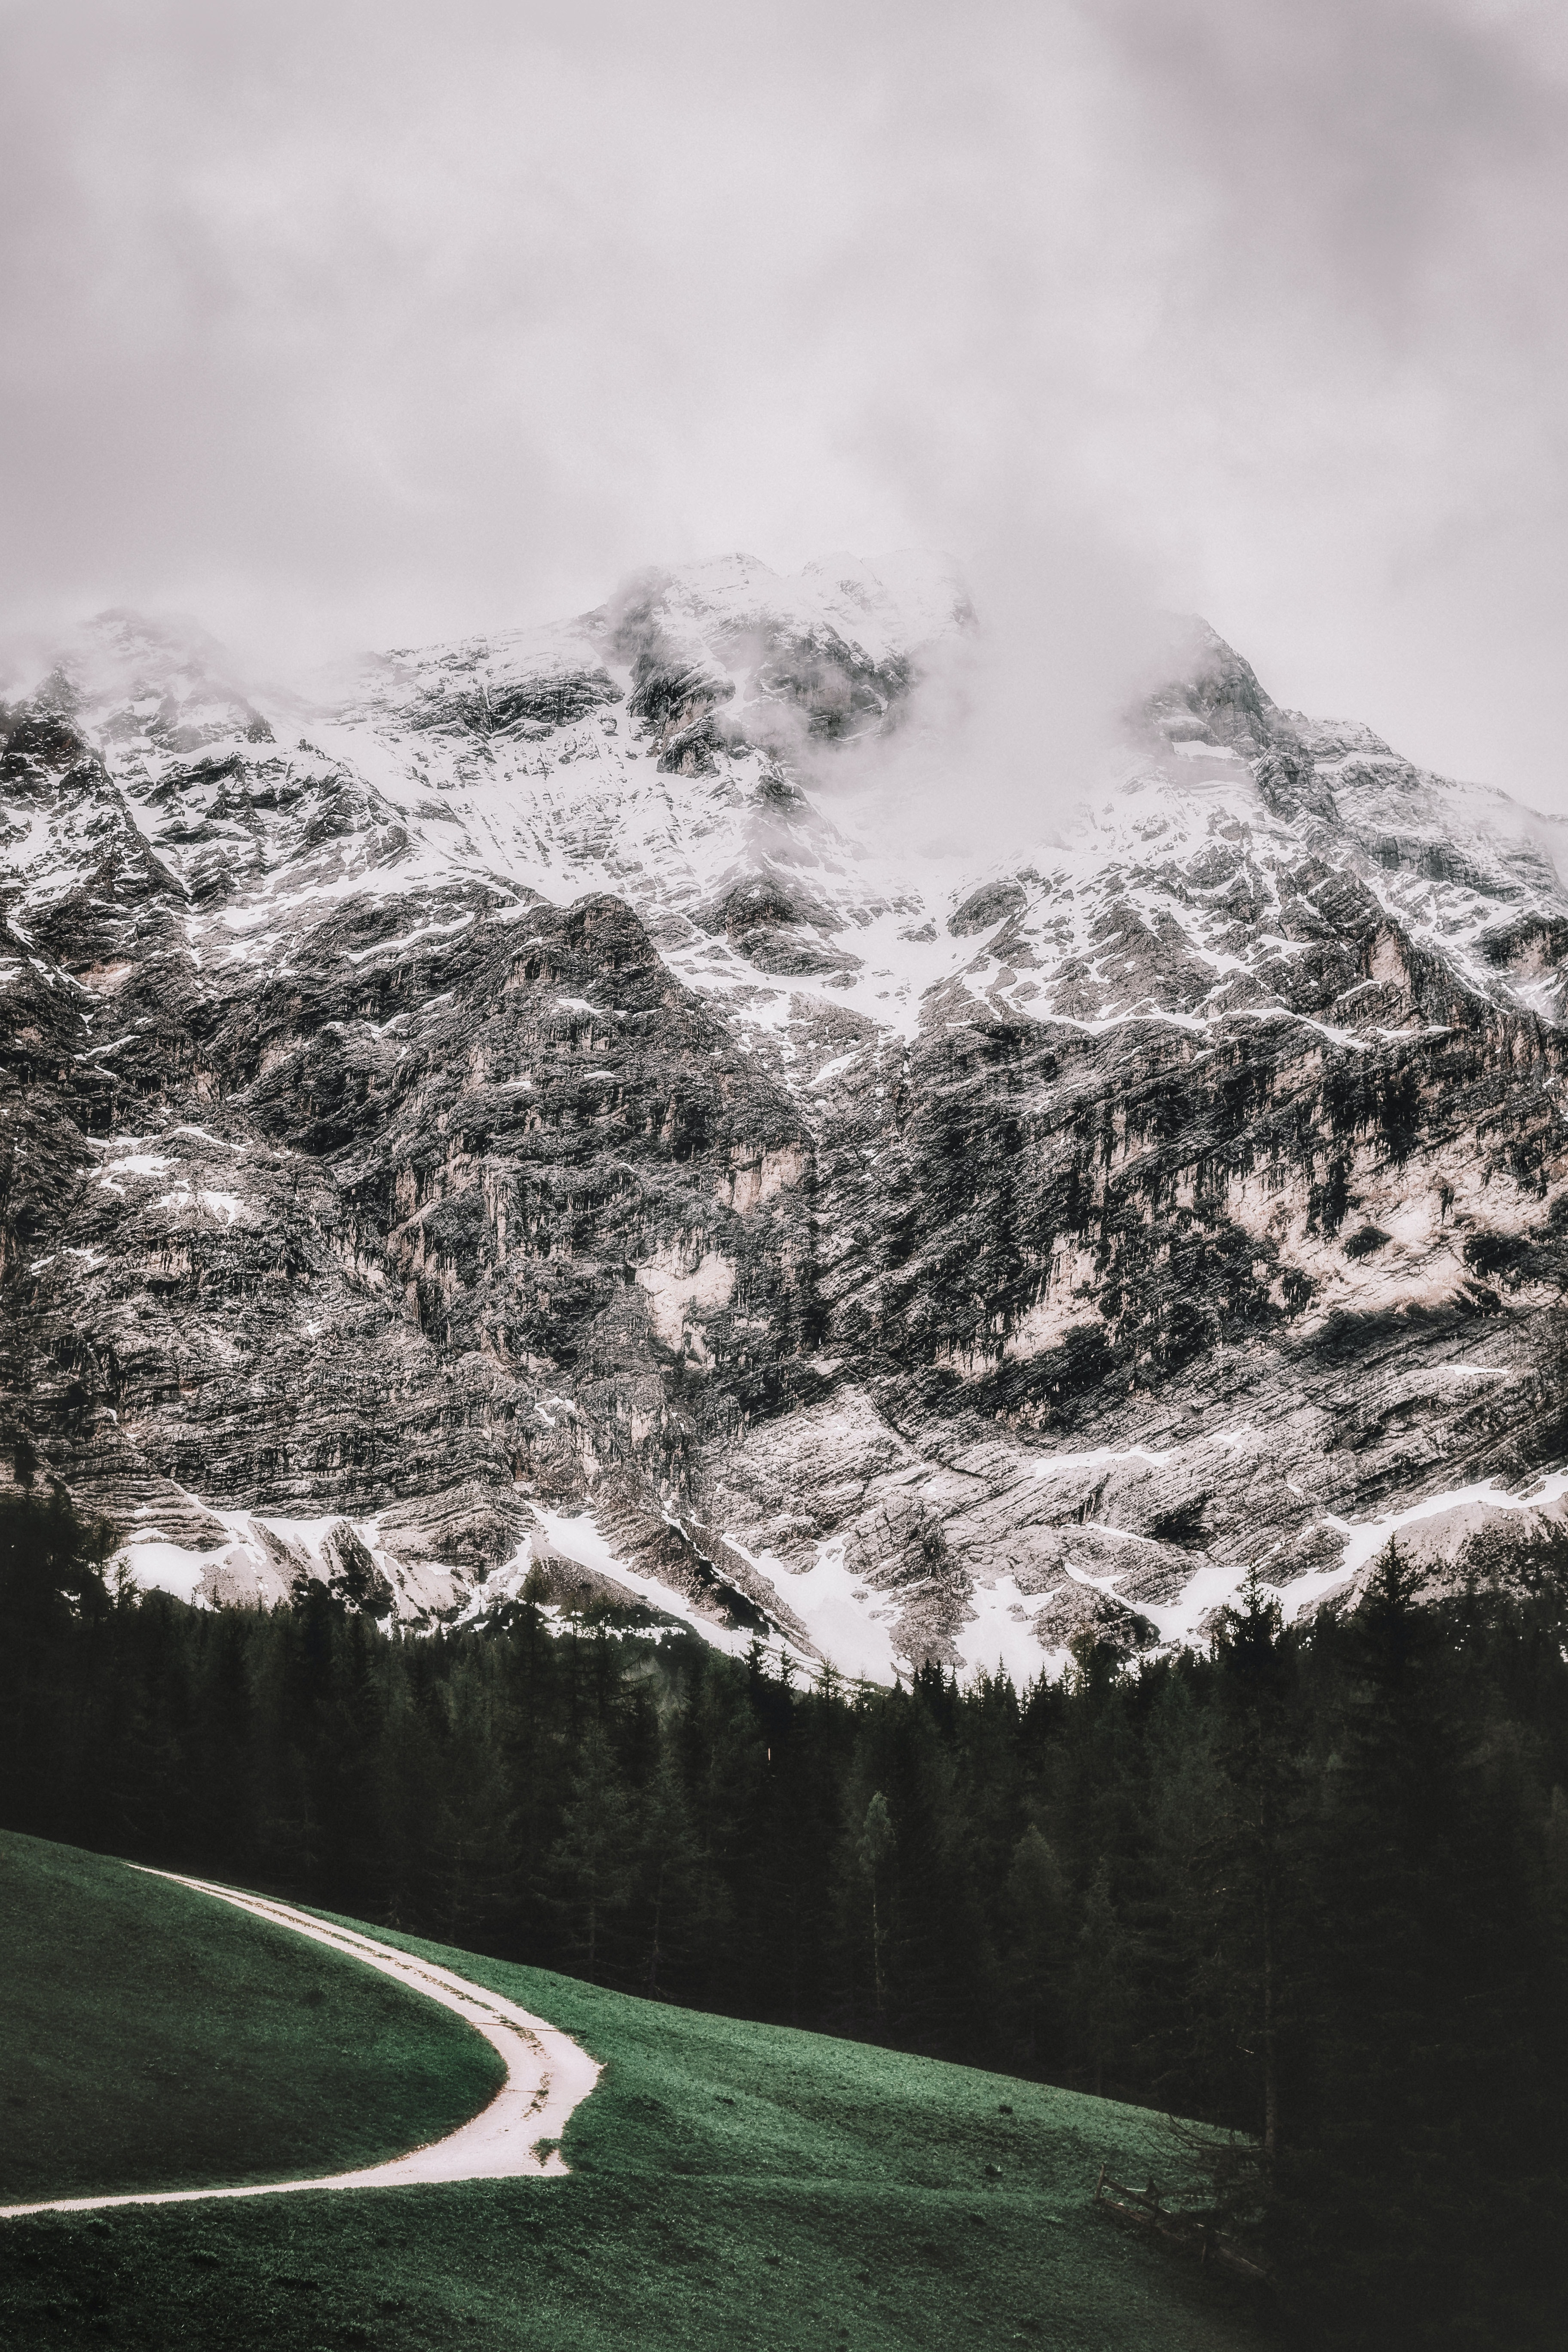 icy mountain under white clouds